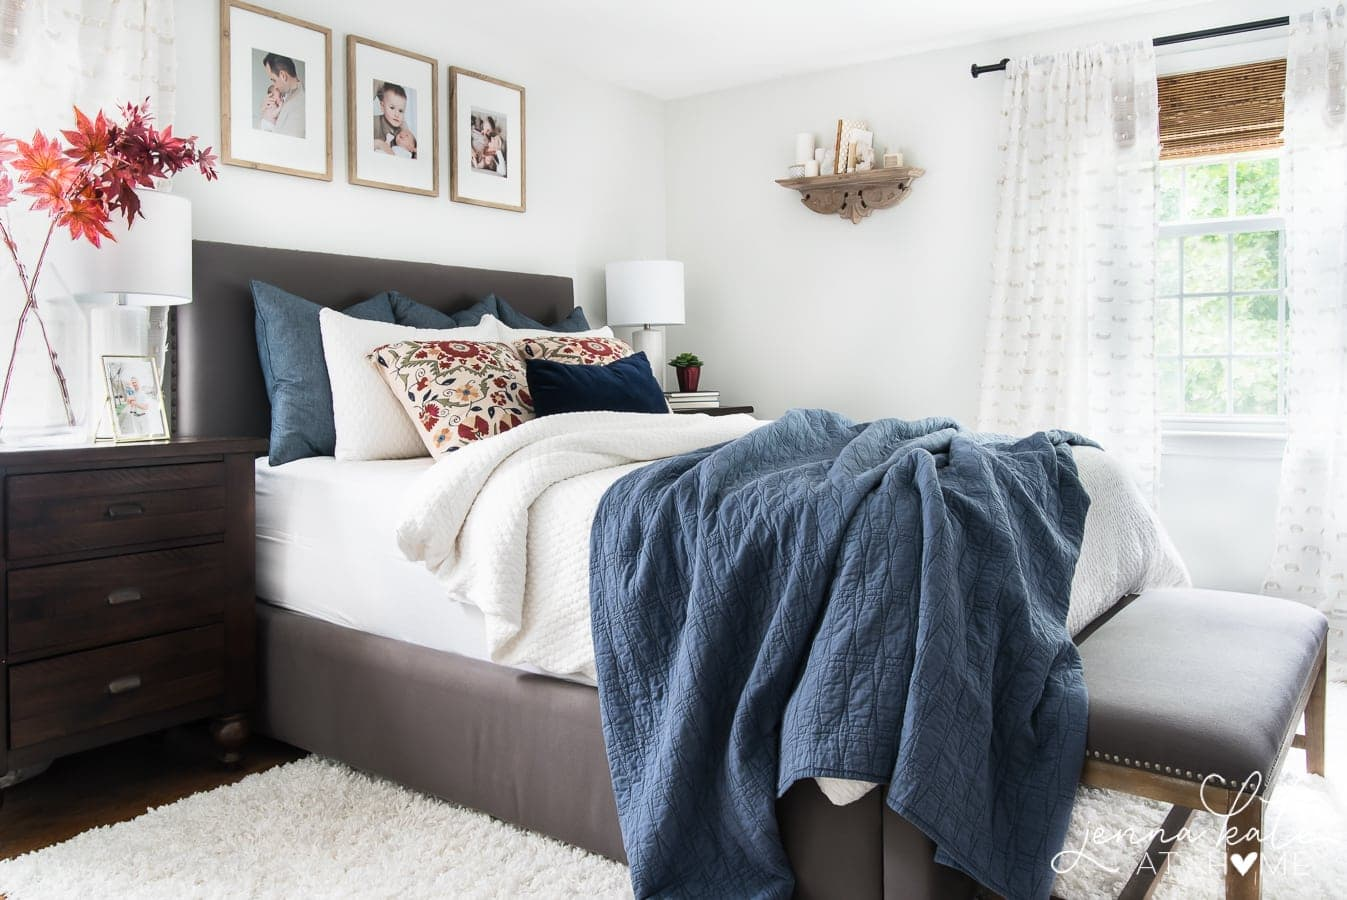 Bedroom decorated for fall with touches of dark red and denim blue